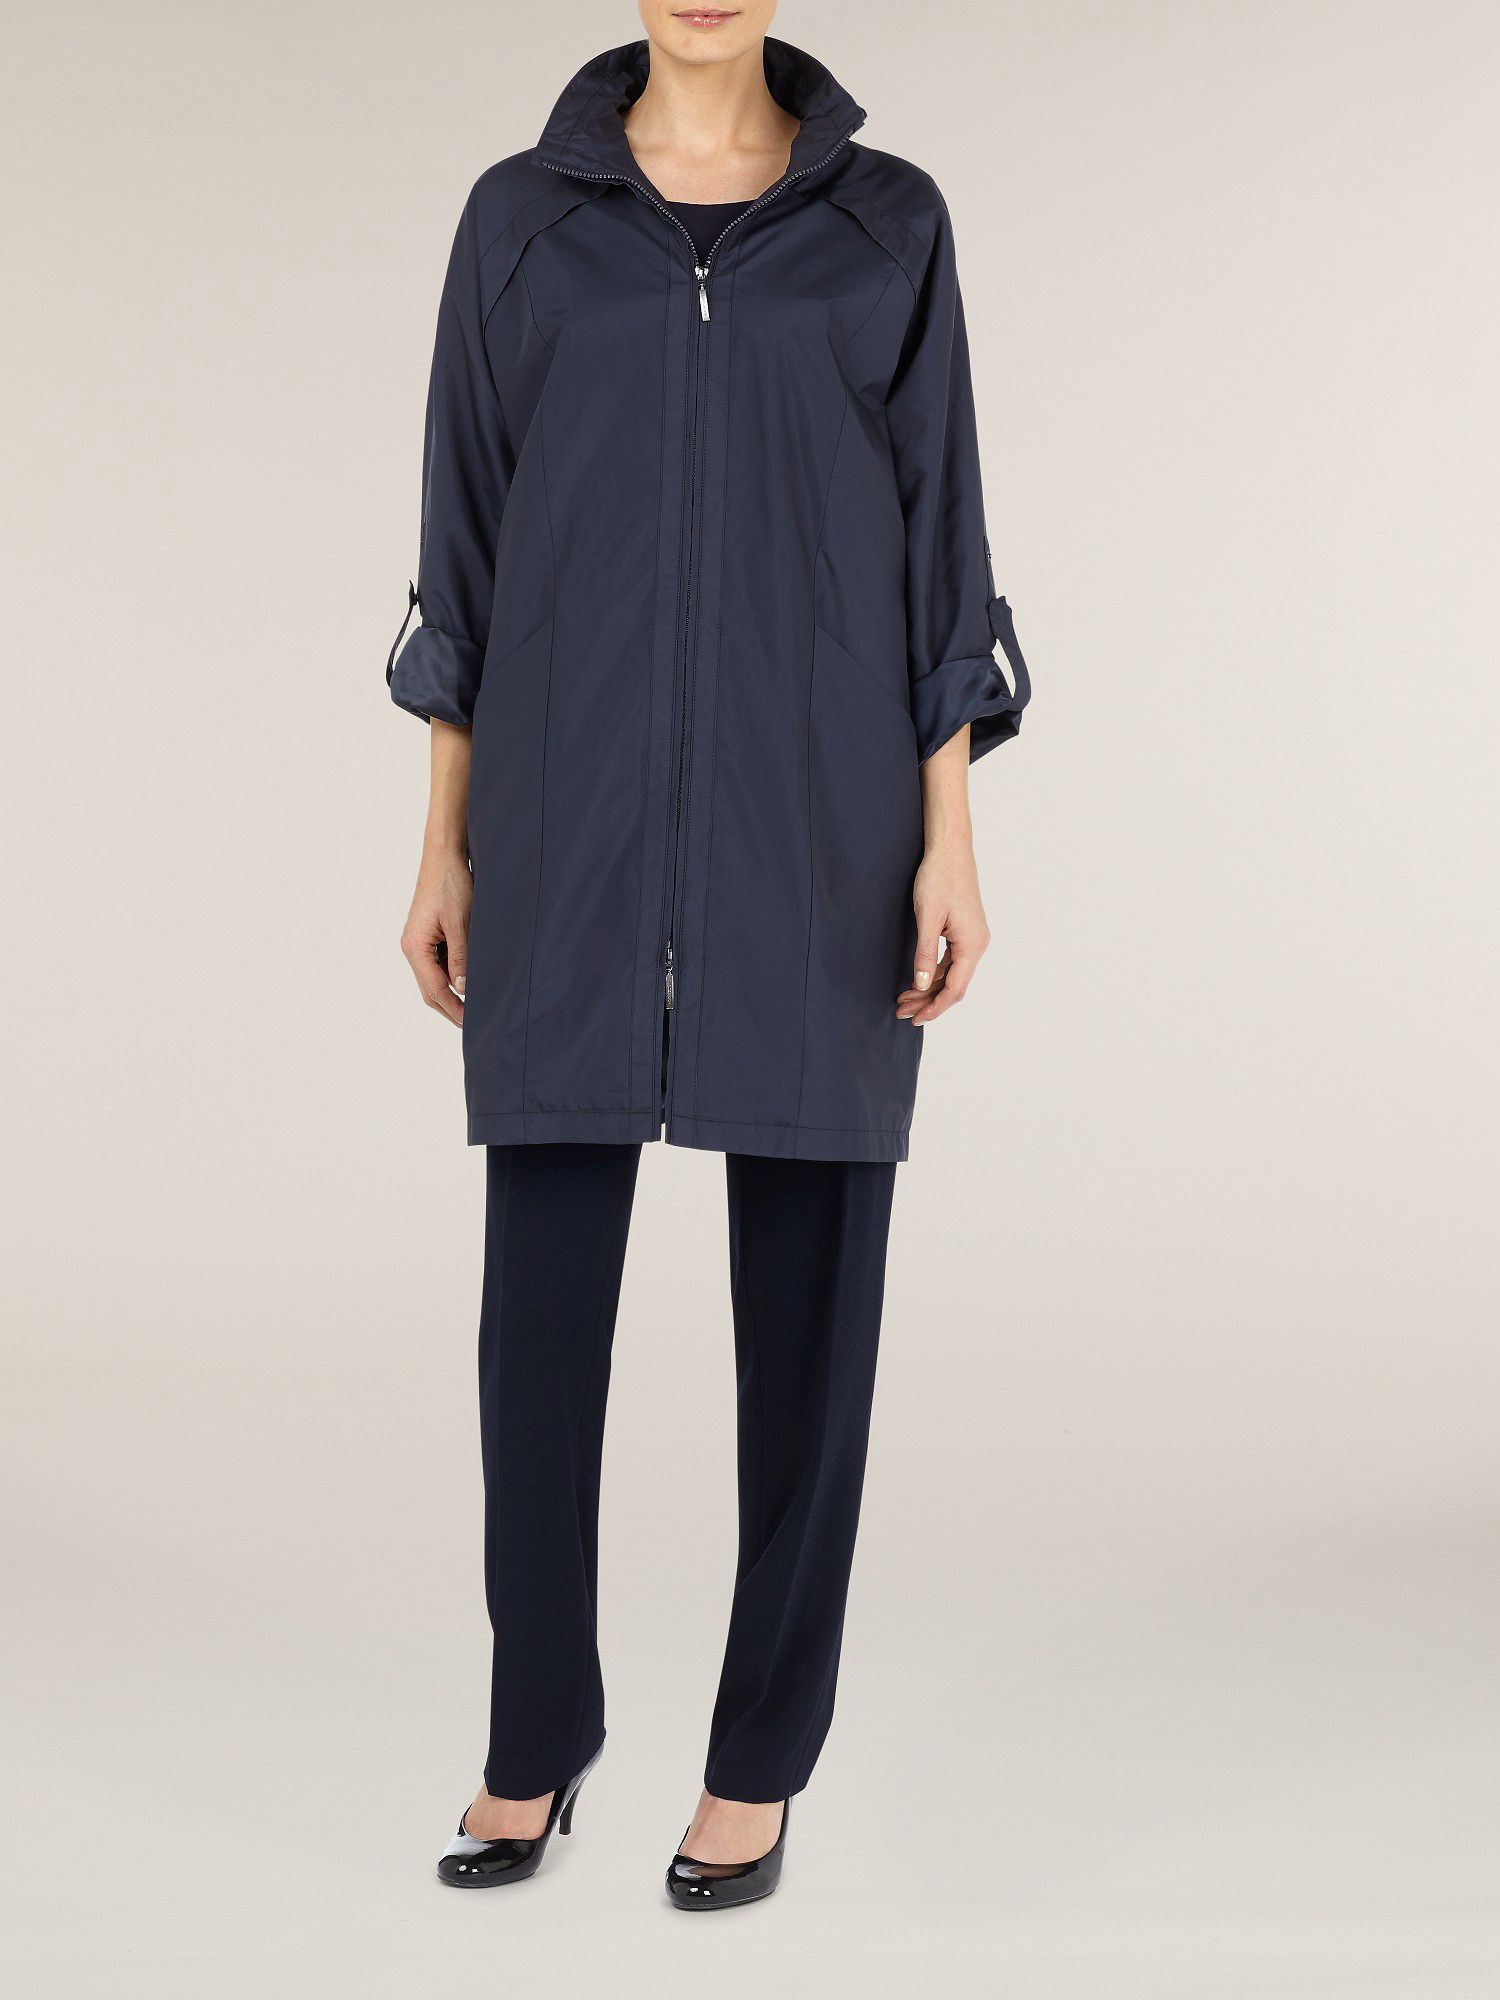 Navy raglan sleeve raincoat